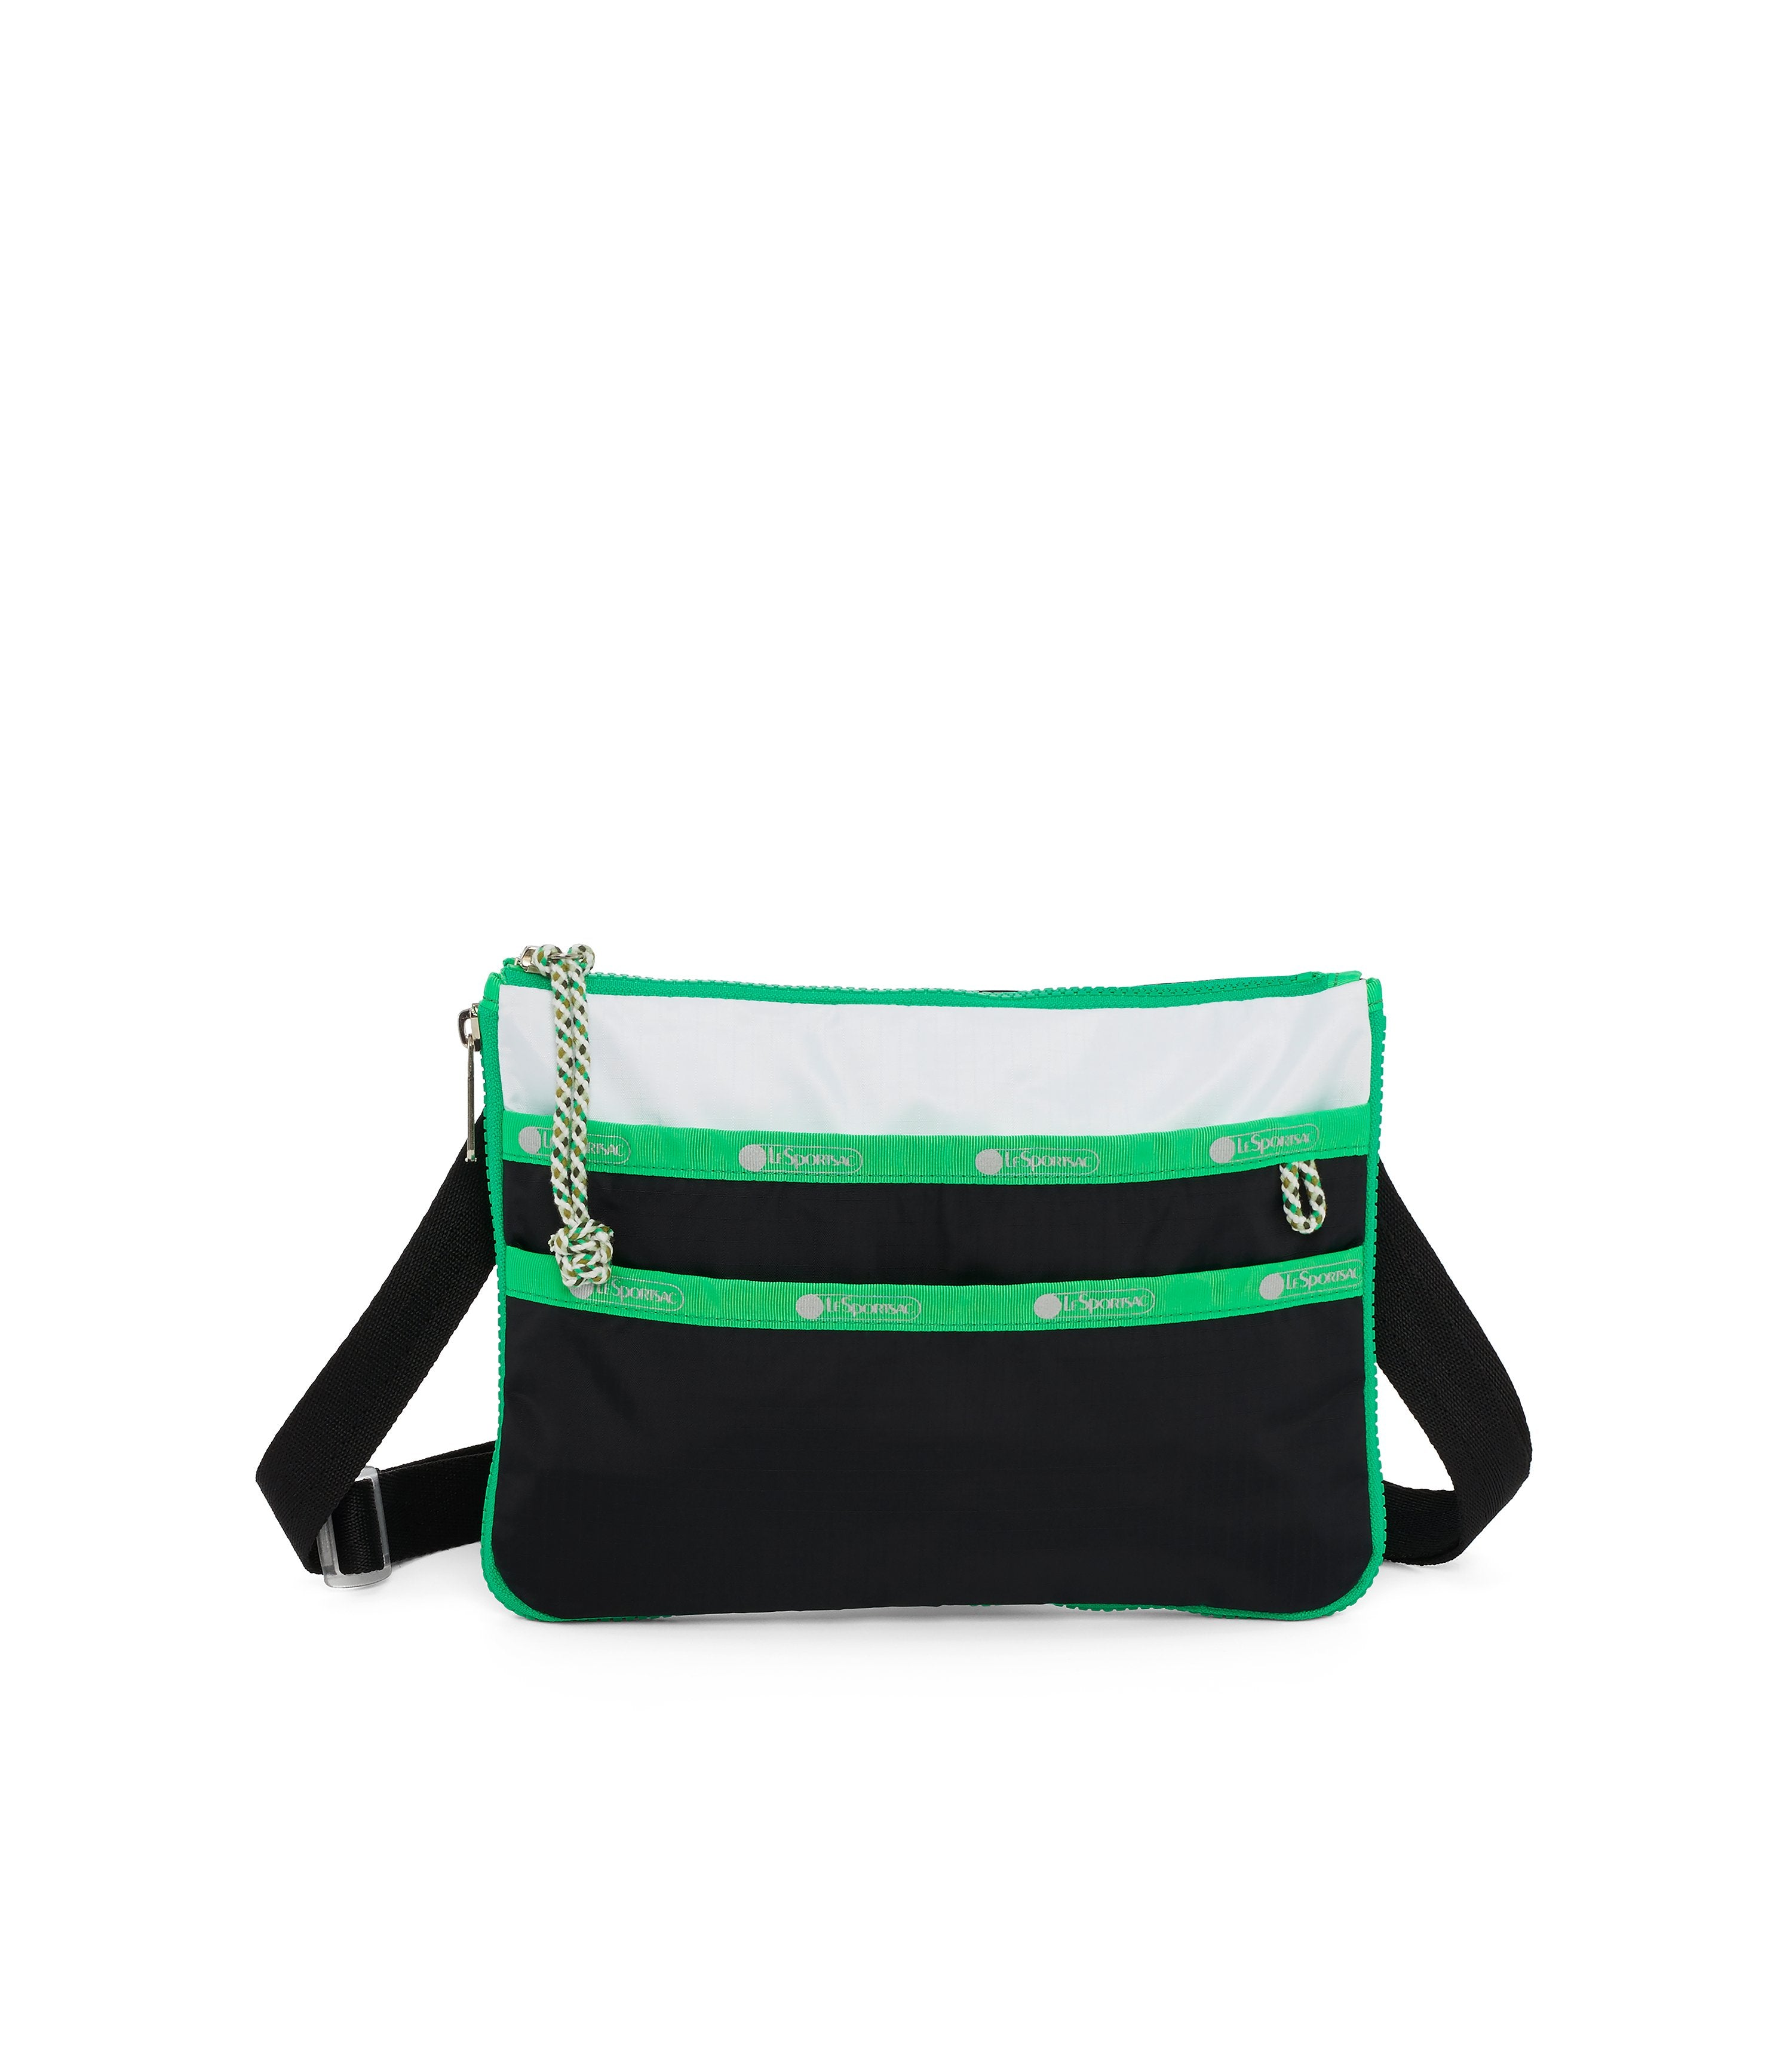 Expandable Pouch, Accessories, Handbag and Crossbody Bags, LeSportsac